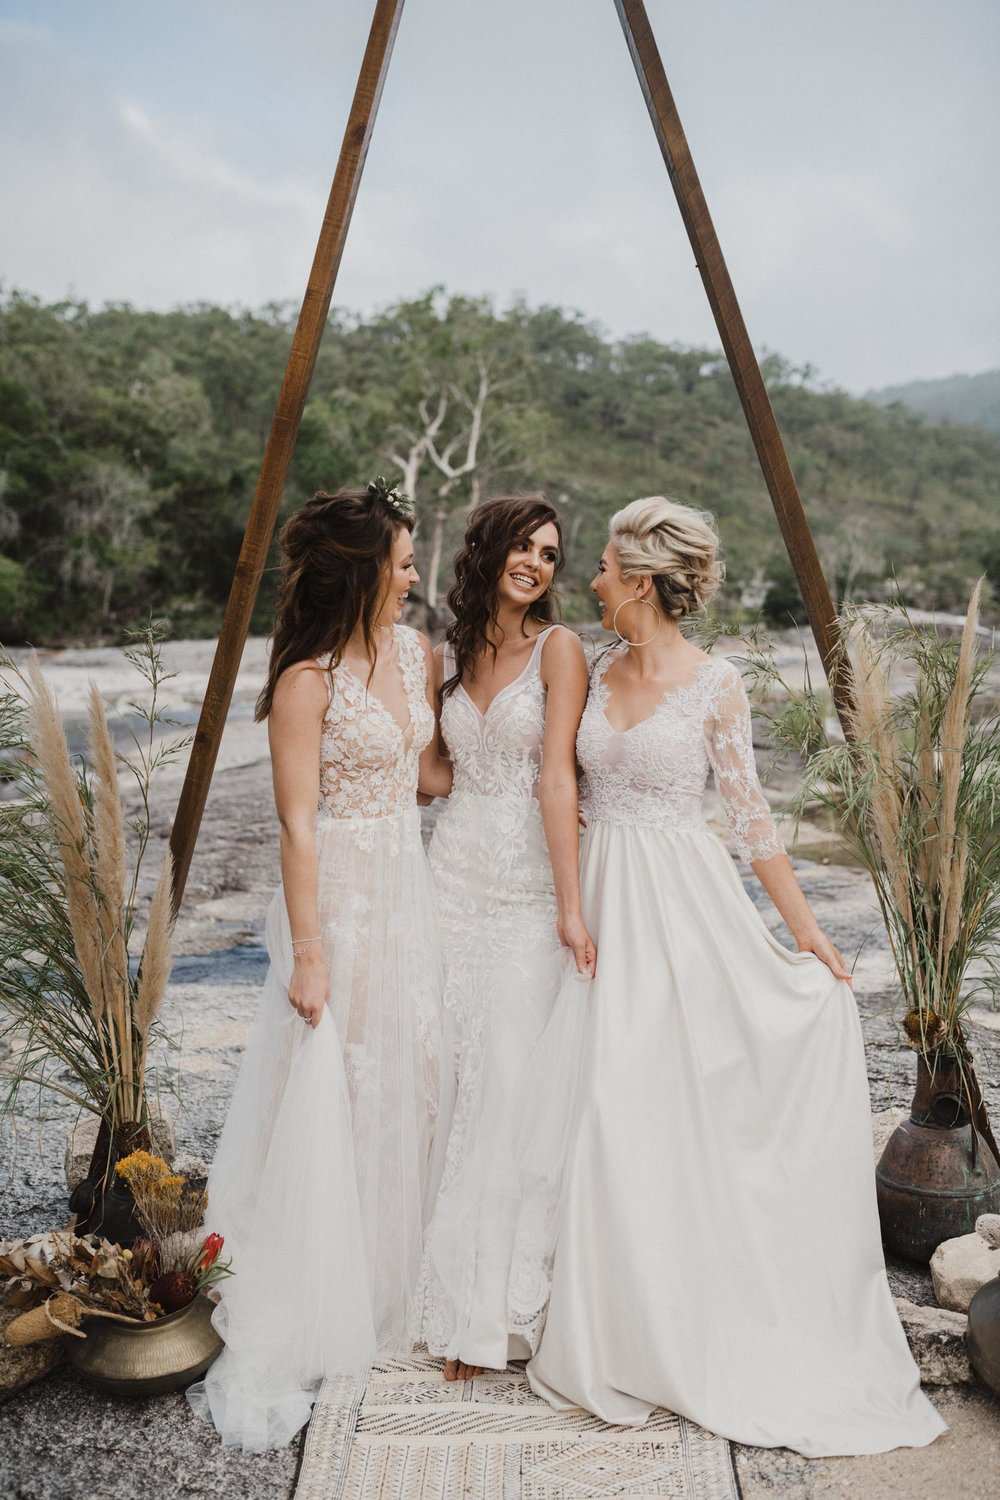 The Raw Photographer - Cairns Wedding Photographer - Brides Styled Shoot - Dress Jonovia Bridal - Hair Makeup Ideas-18.jpg